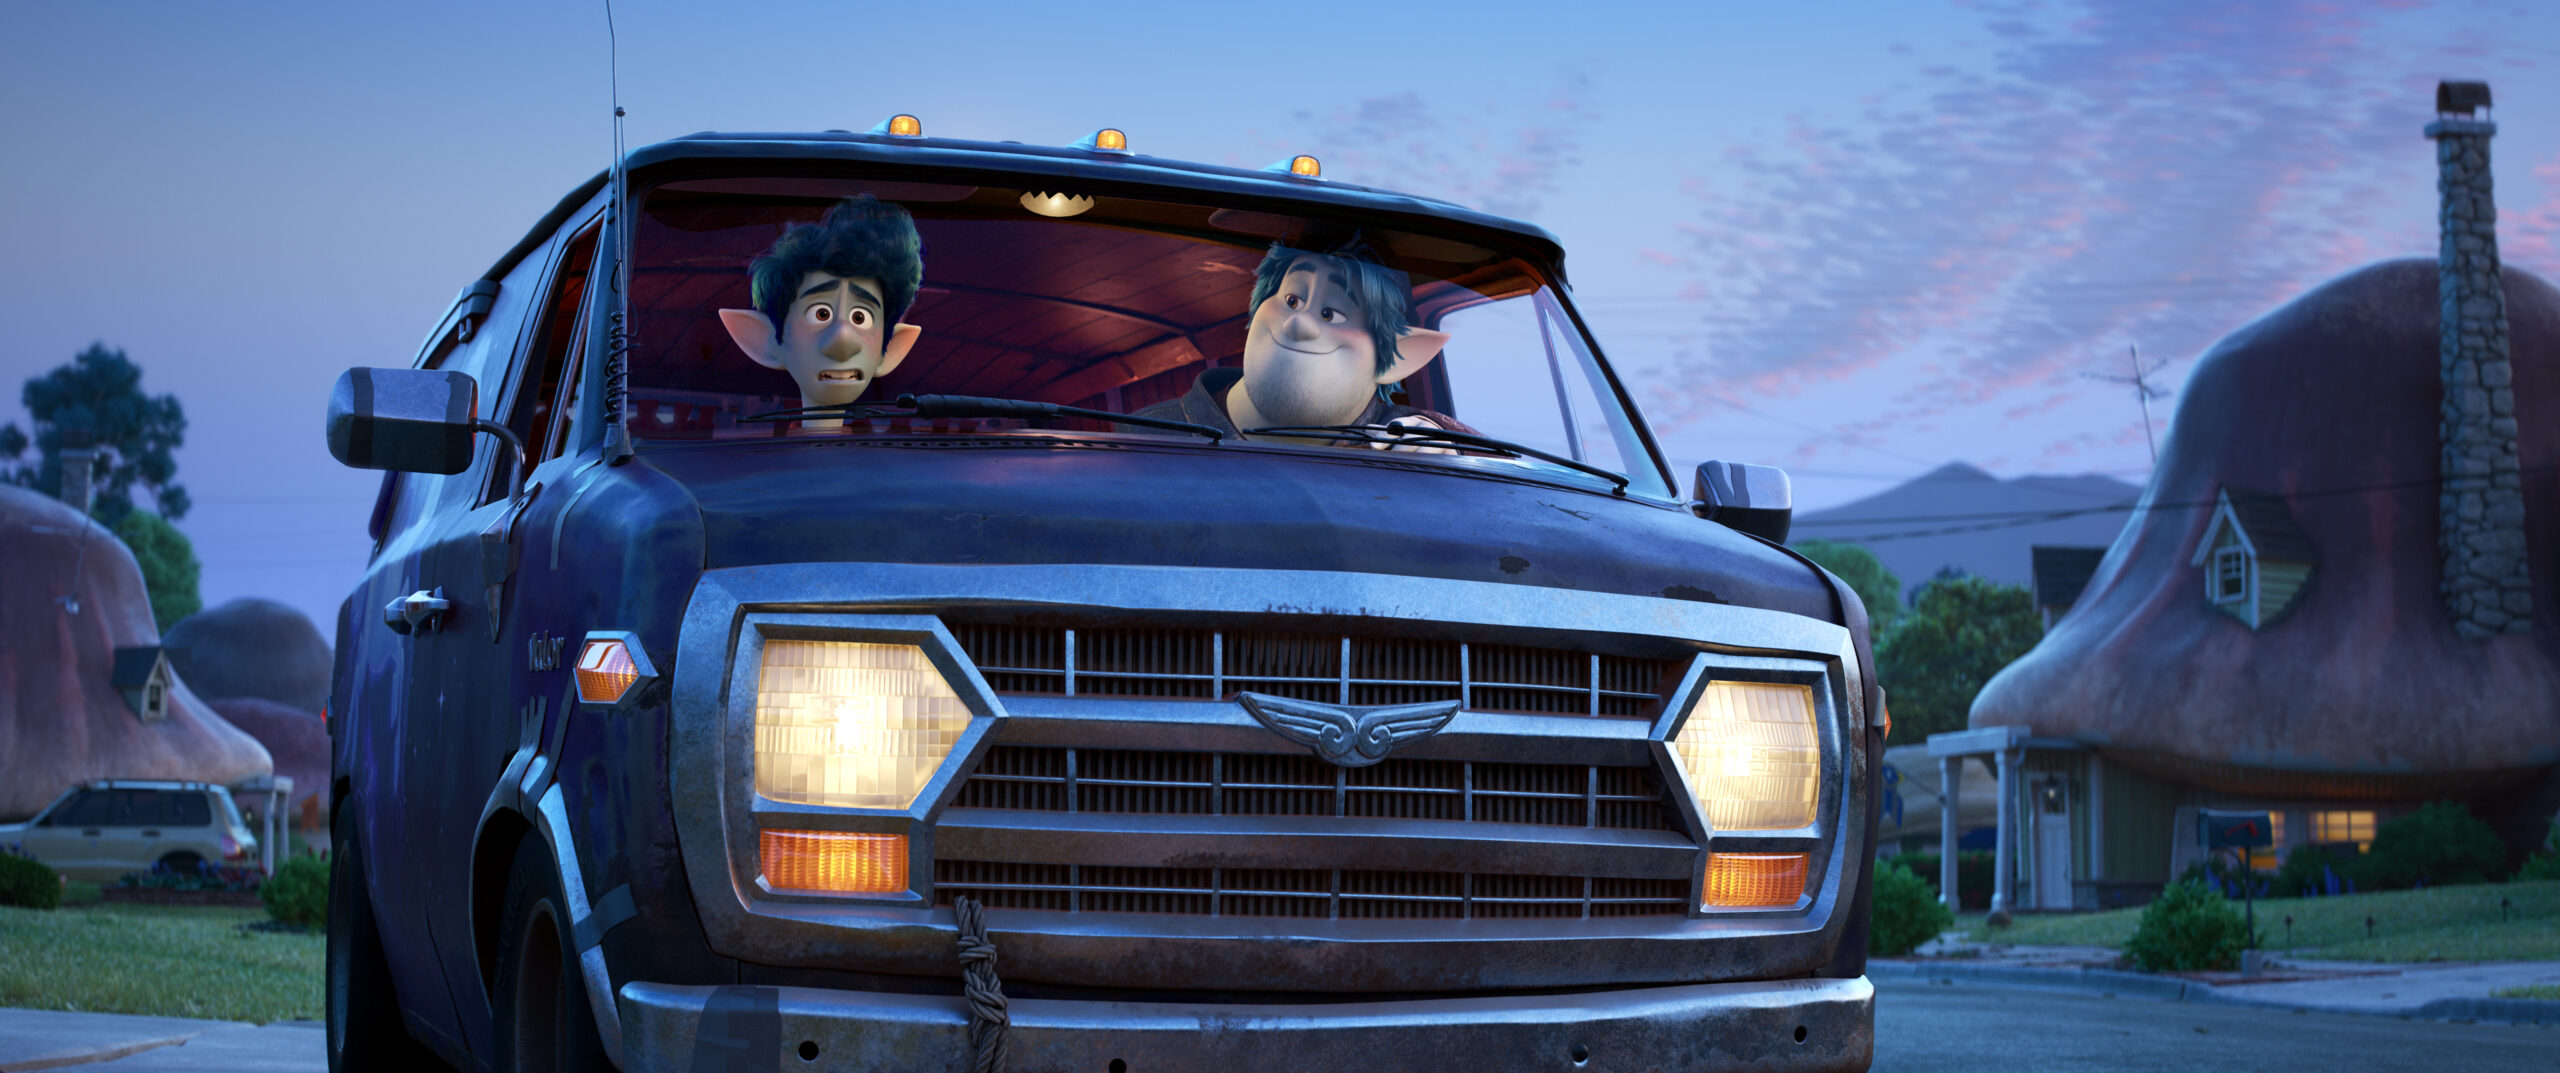 Gearing up to see Pixar's Onward? This Onward review has info that every parent needs to know before taking their kids!